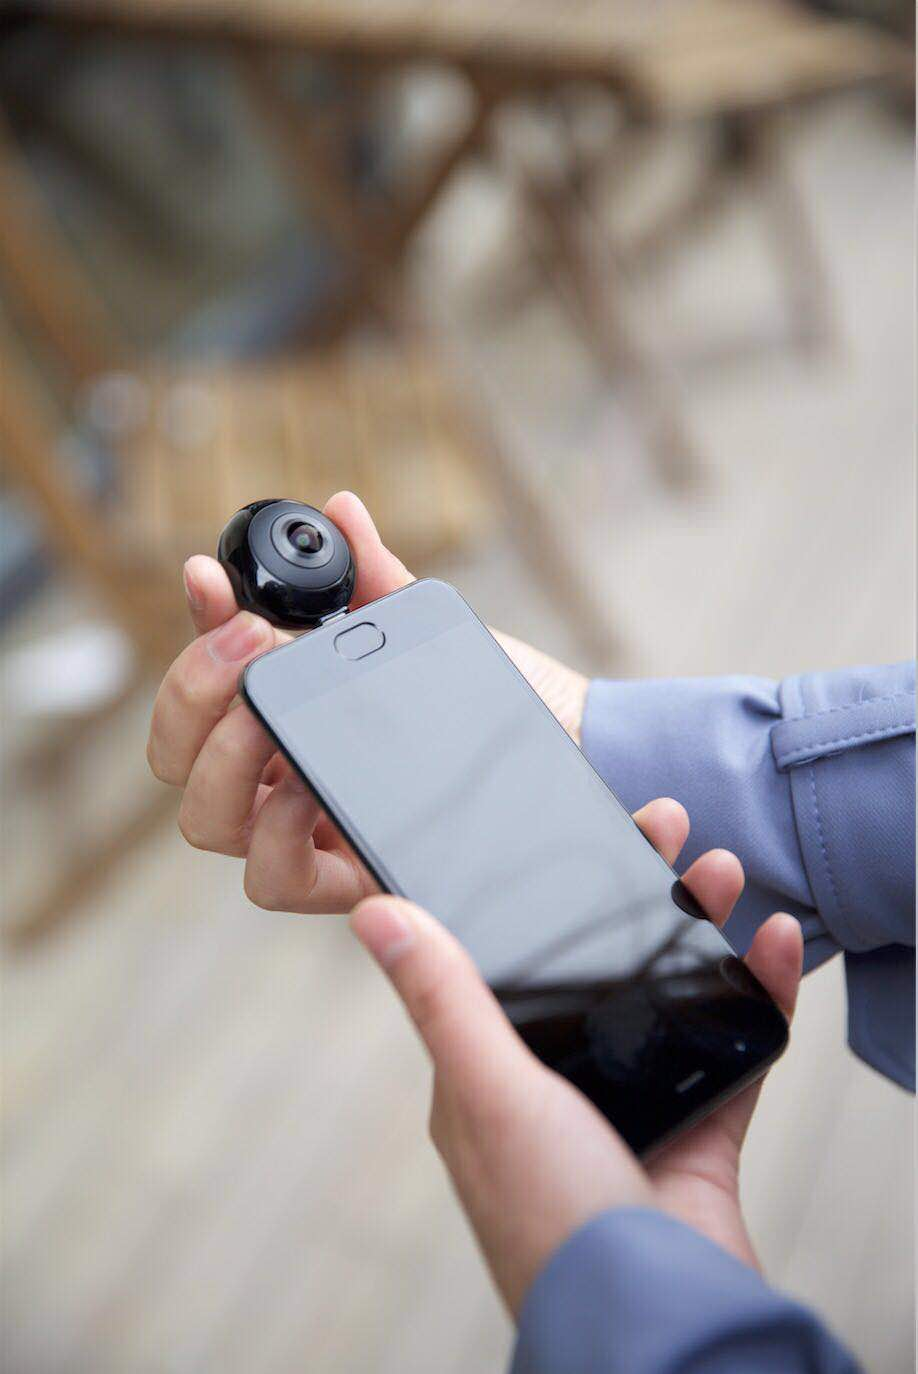 buy xiaomi madv mini panorama camera